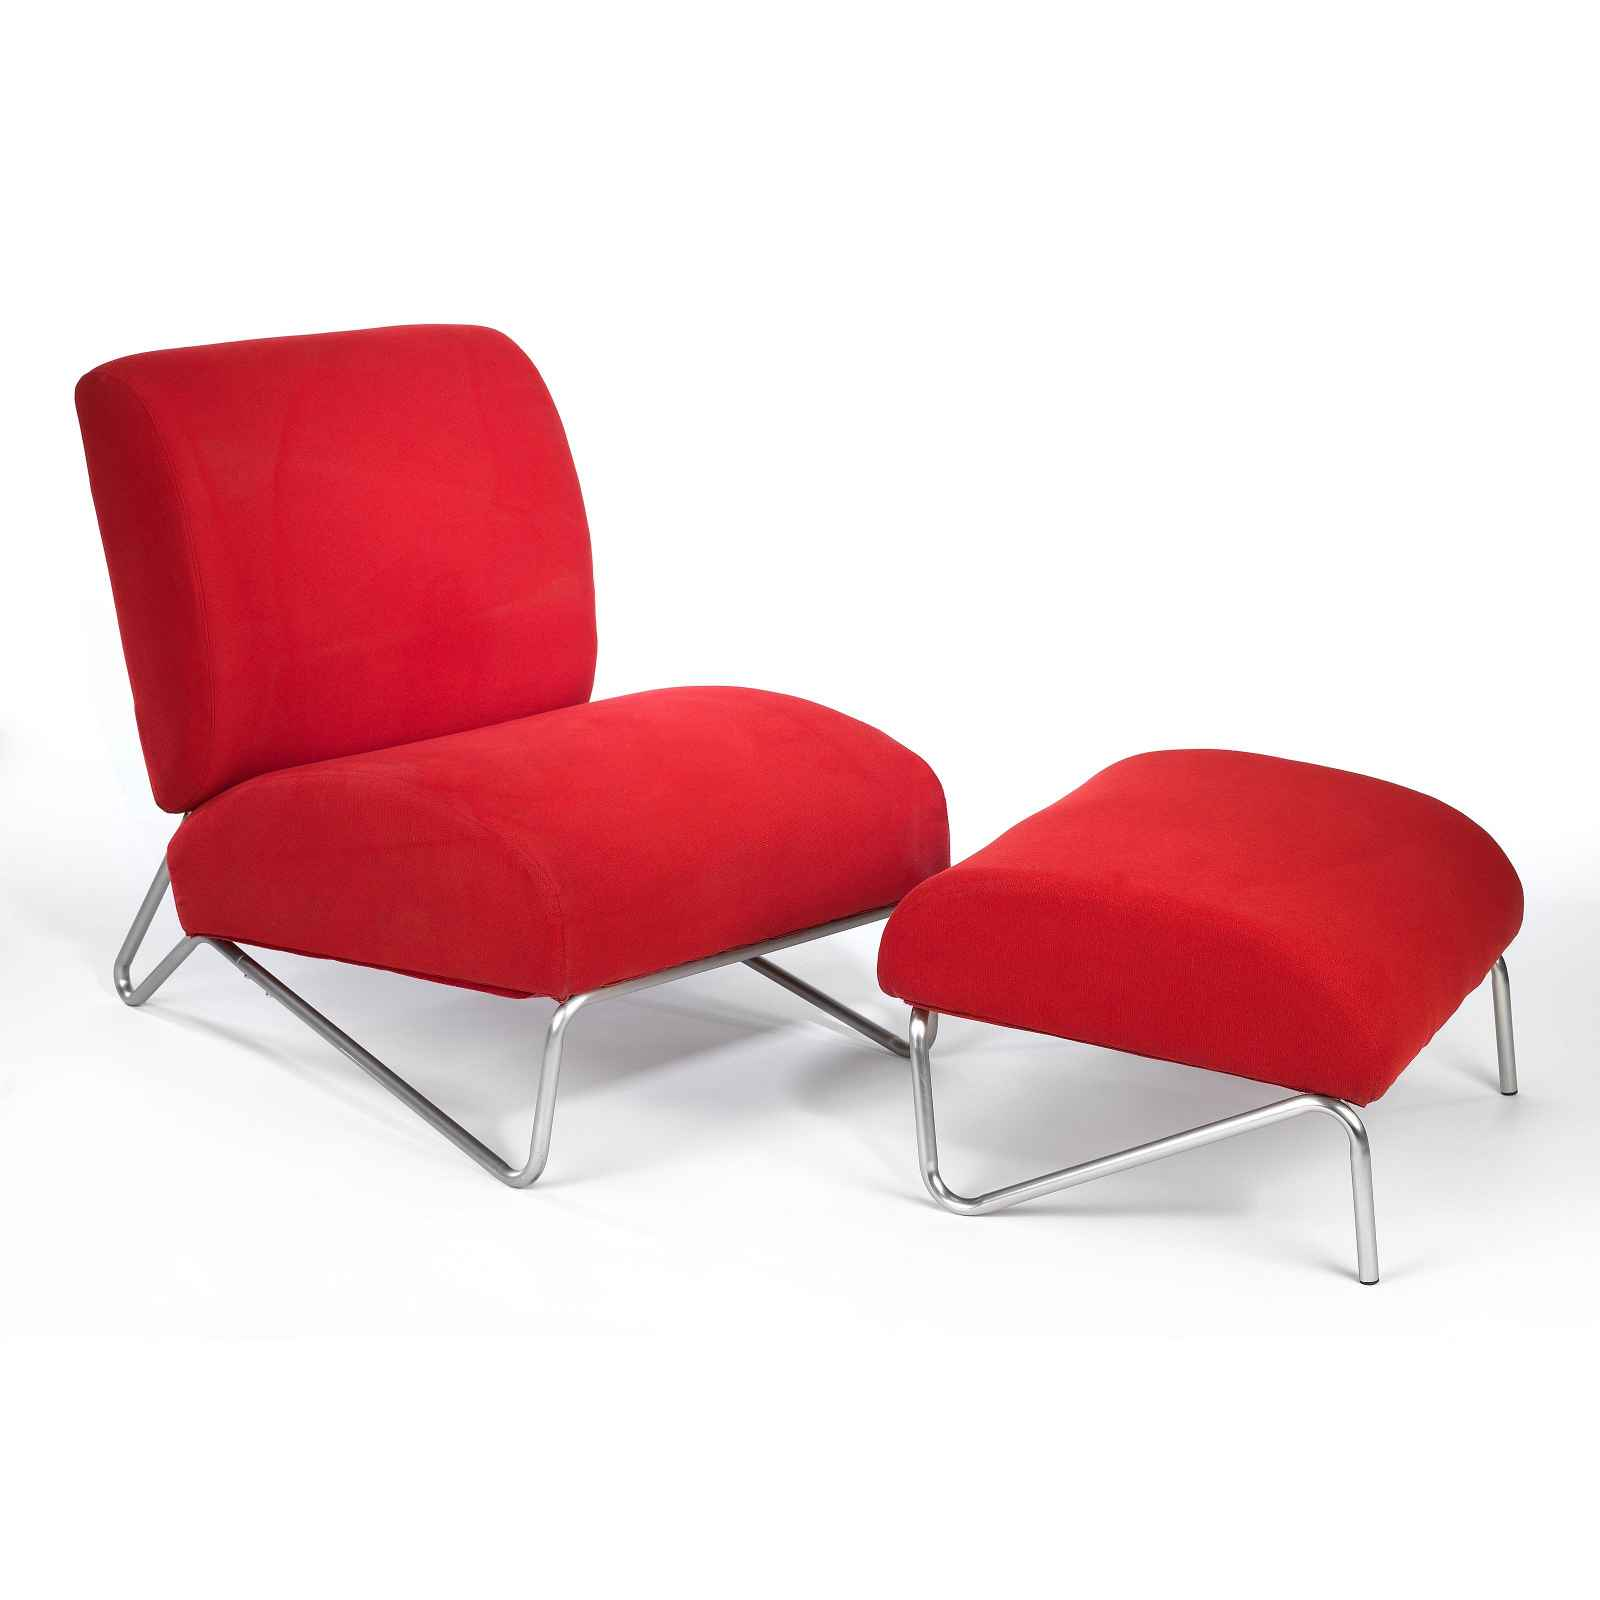 Cheap accent chairs feel the home